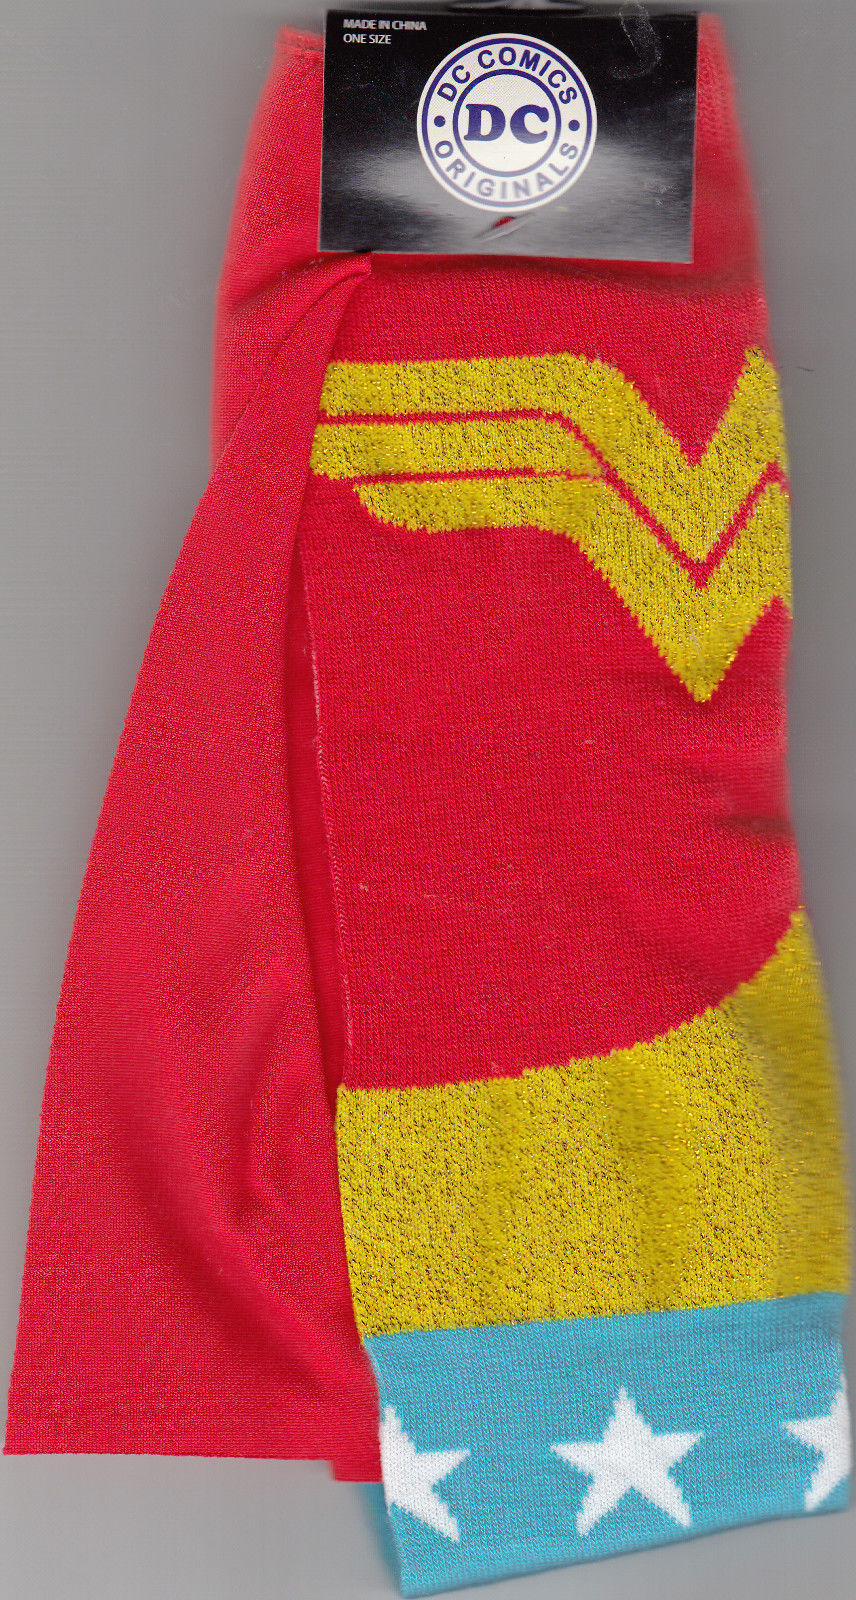 Wonder Woman Socks With Attached Cape,Sock Size 9-11 By DC Comics Original, New